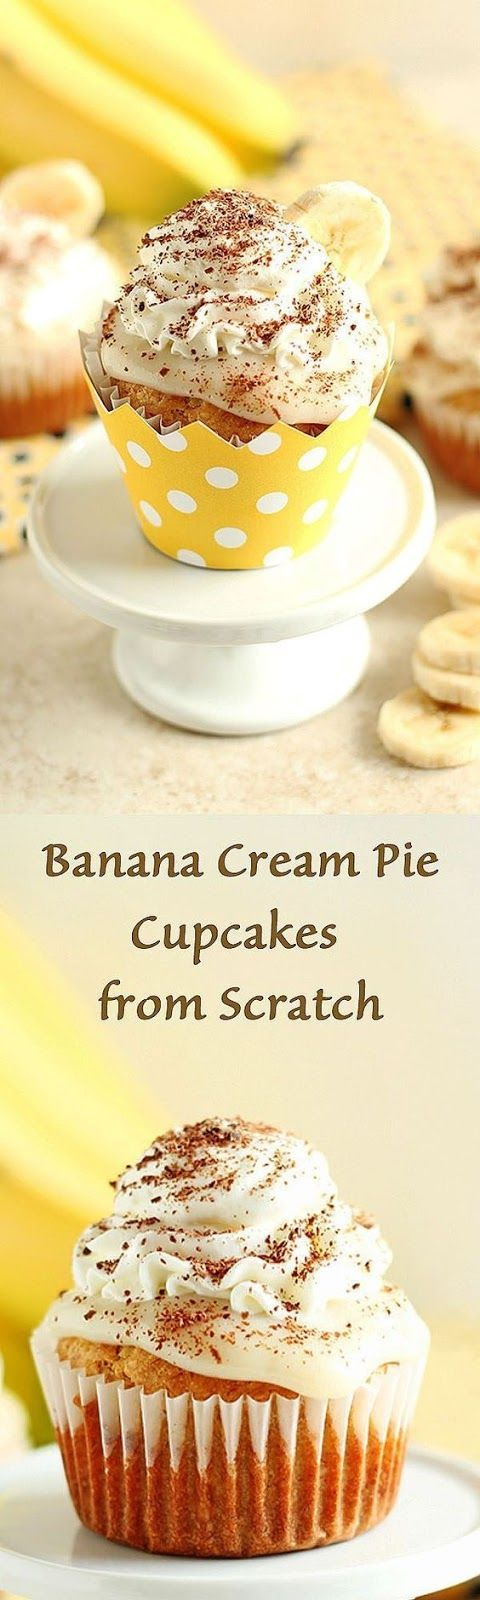 BANANA CREAM PIE CUPCAKES FROM SCRATCH | Food And Cake Recipes